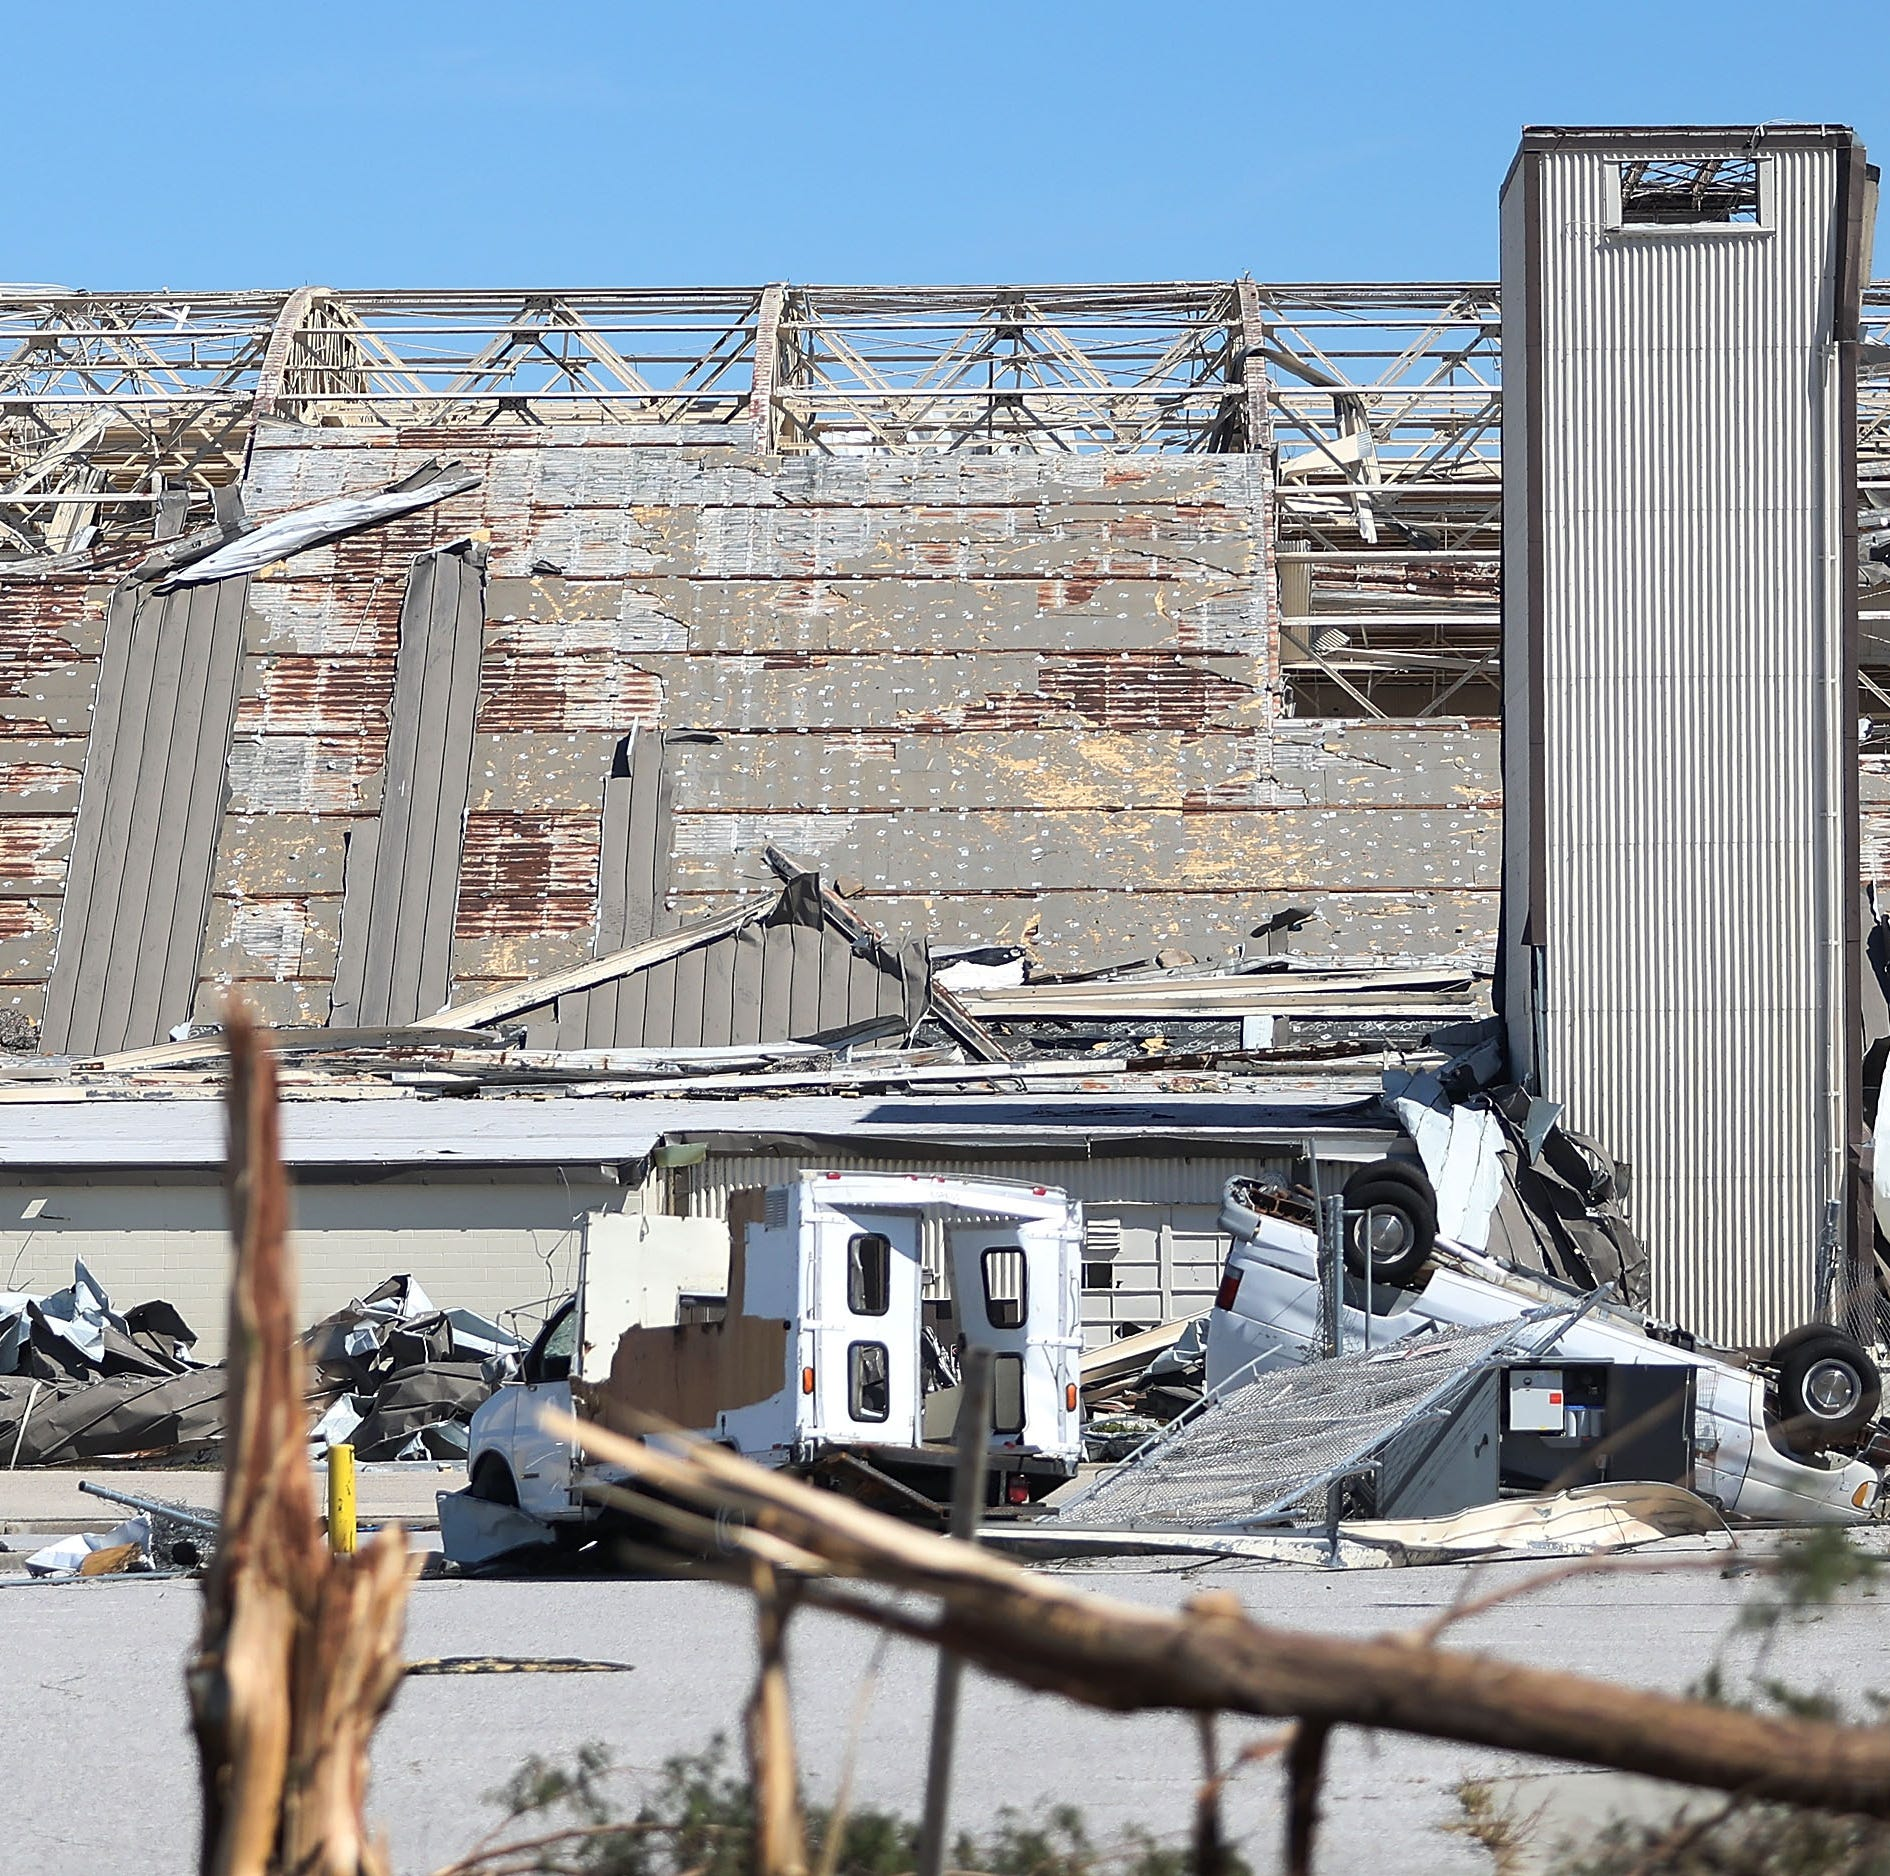 Hurricane Michael: Fate of costly stealth fighter jets at Tyndall Air Force Base still unknown